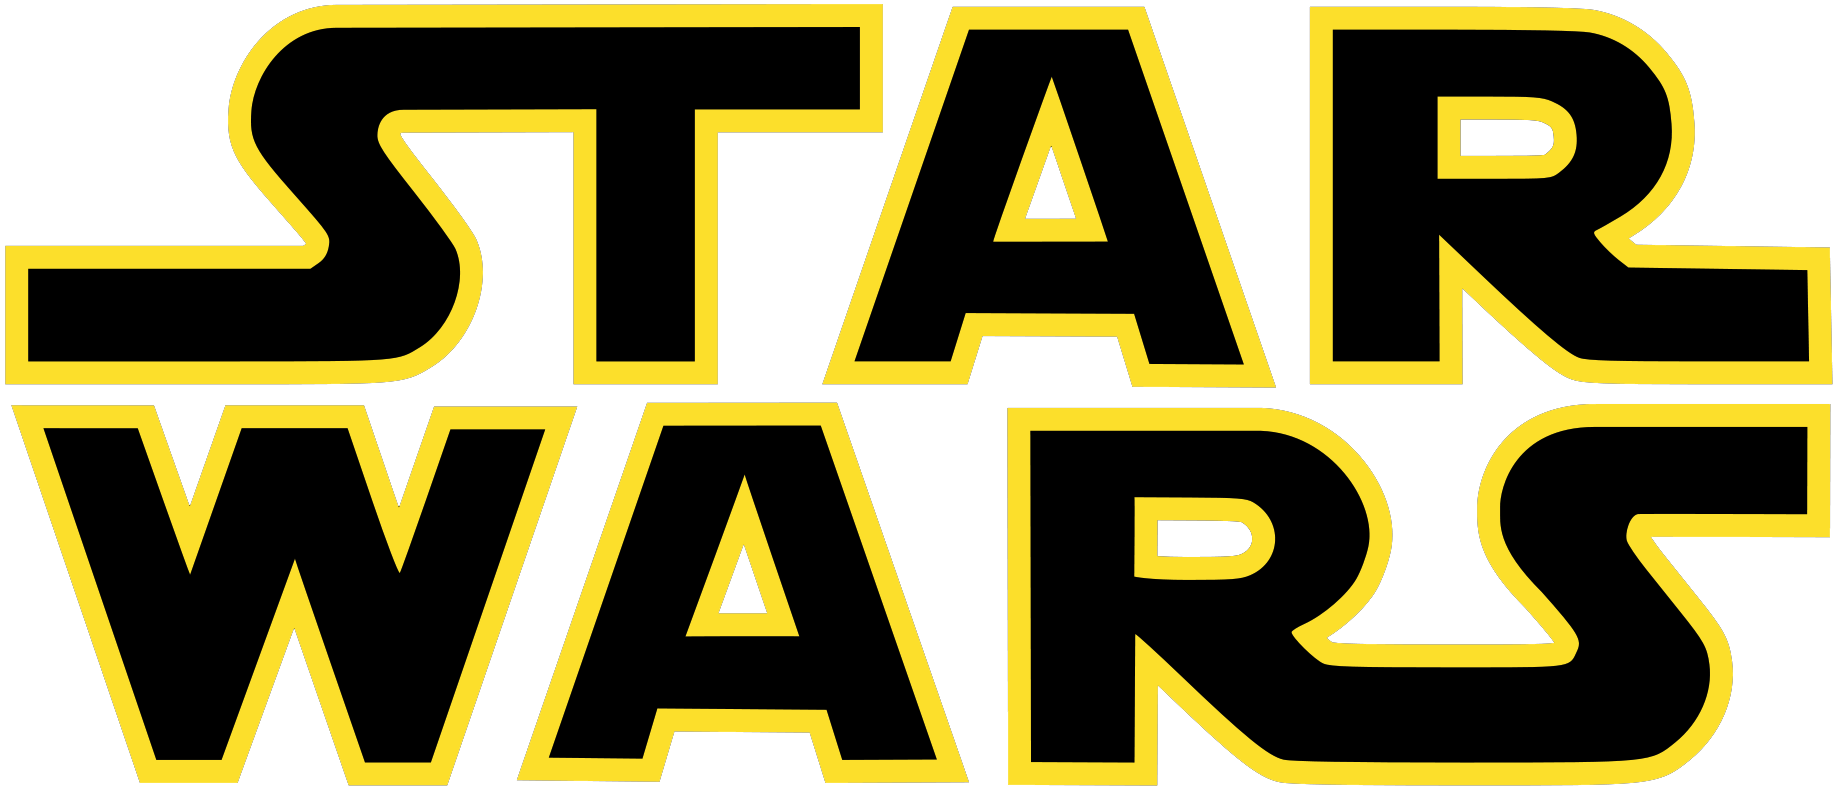 Star destroyer clipart image transparent stock Image - Starwars-logo.png | Disney Wiki | FANDOM powered by Wikia image transparent stock